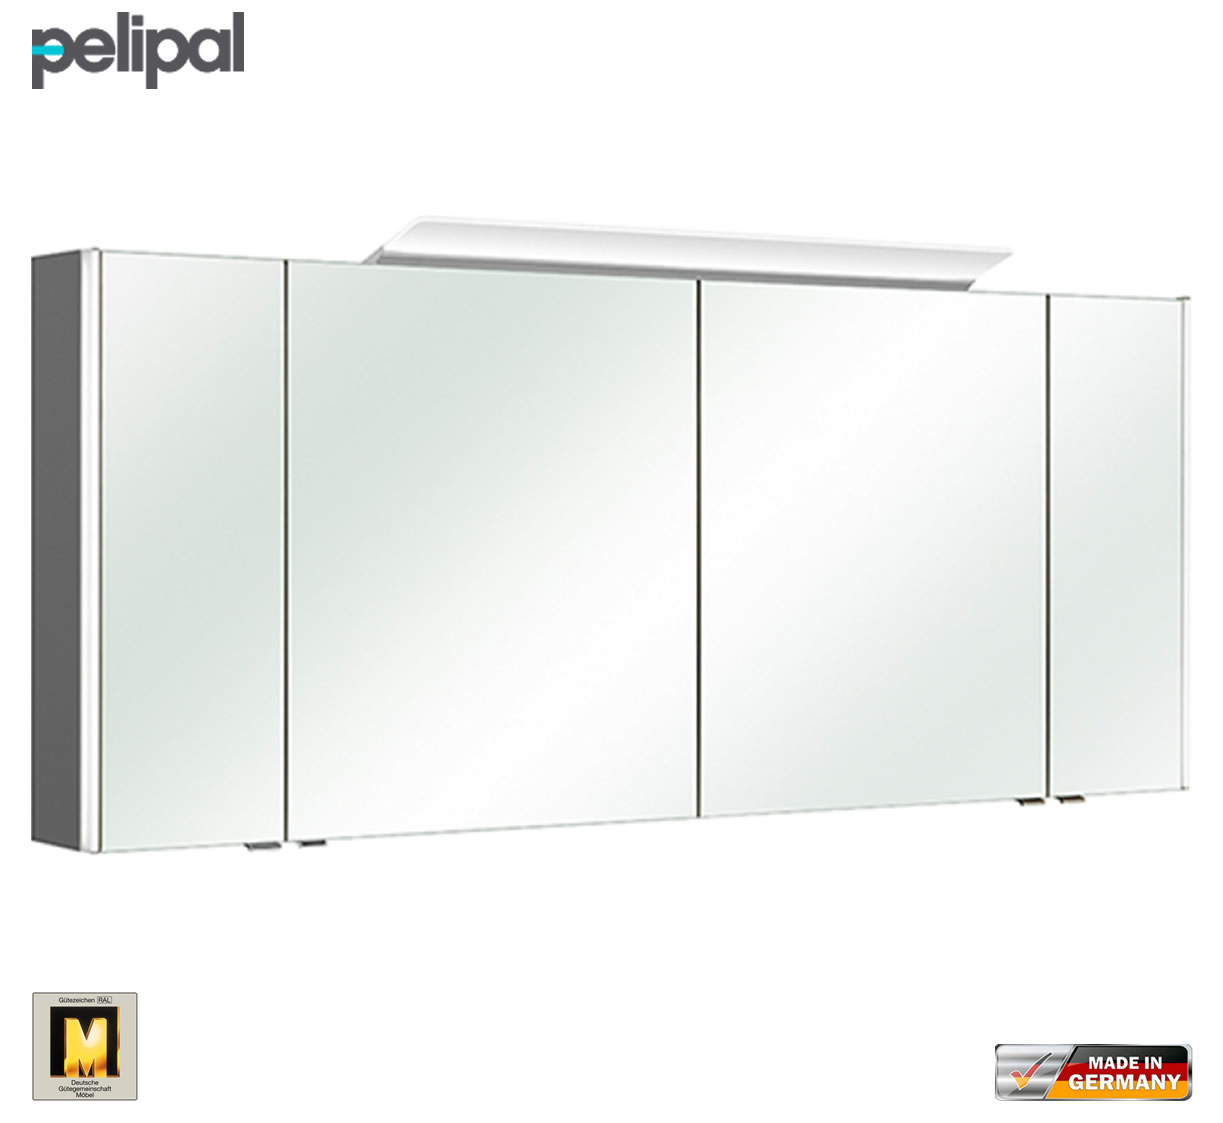 pelipal neutraler spiegelschrank s10 ledplus 172 cm mit. Black Bedroom Furniture Sets. Home Design Ideas